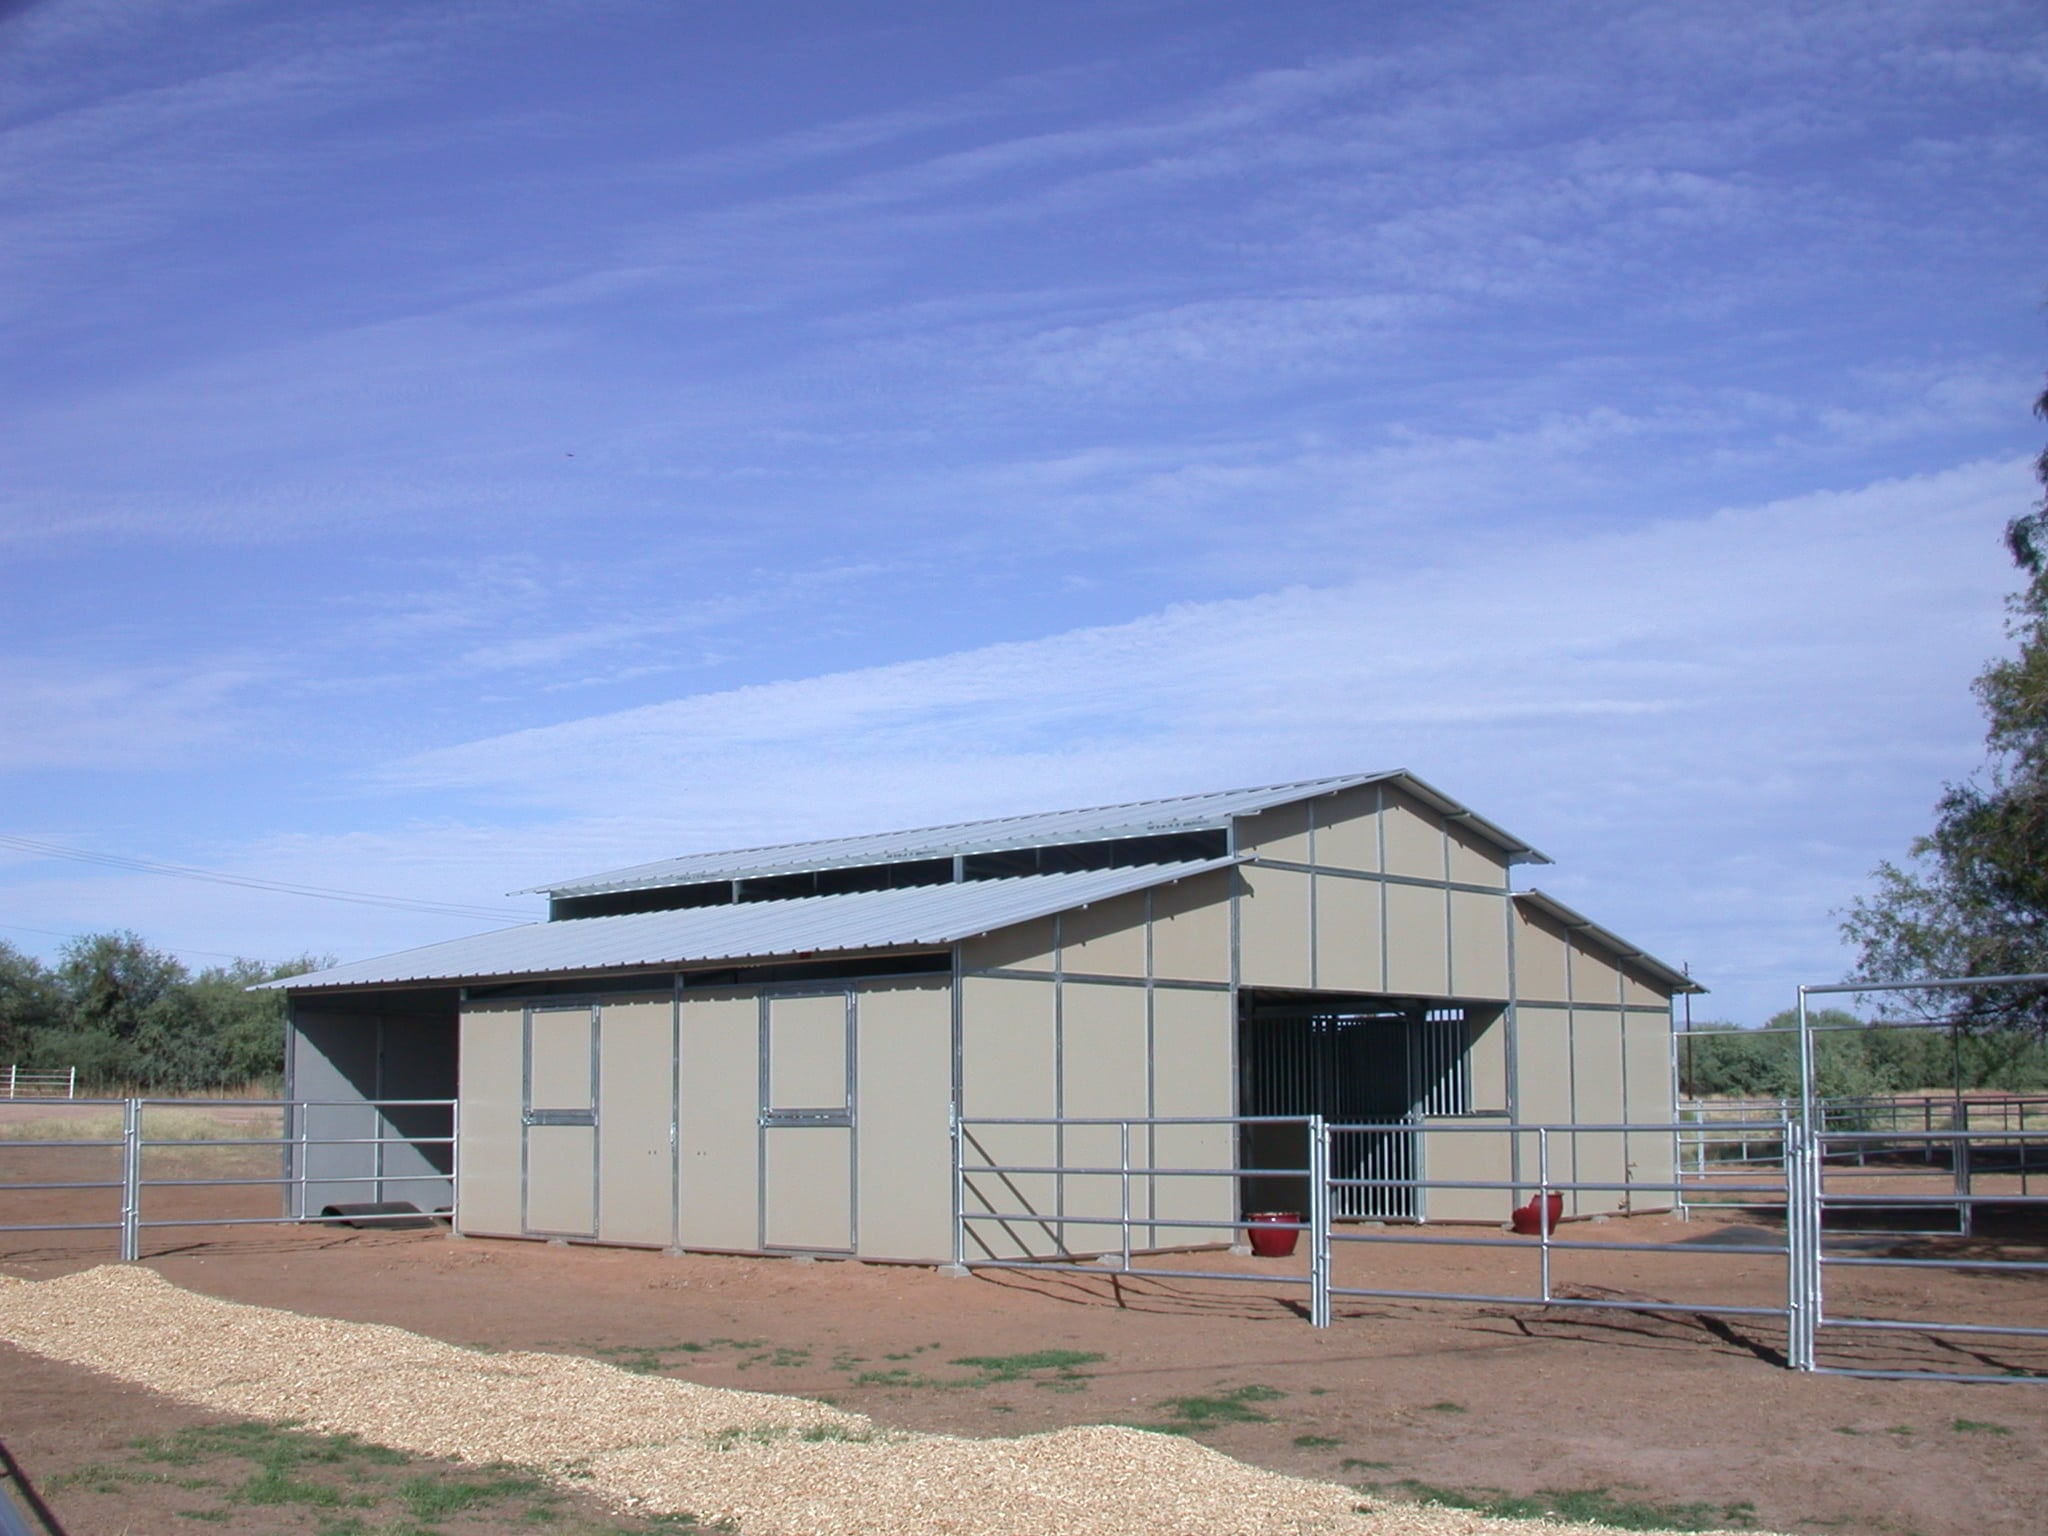 4 stall Raised center aisle breezeway barn, 3:12 pitch roof with one open hay bay shows turnout pipe panels 5' x 4 rails.